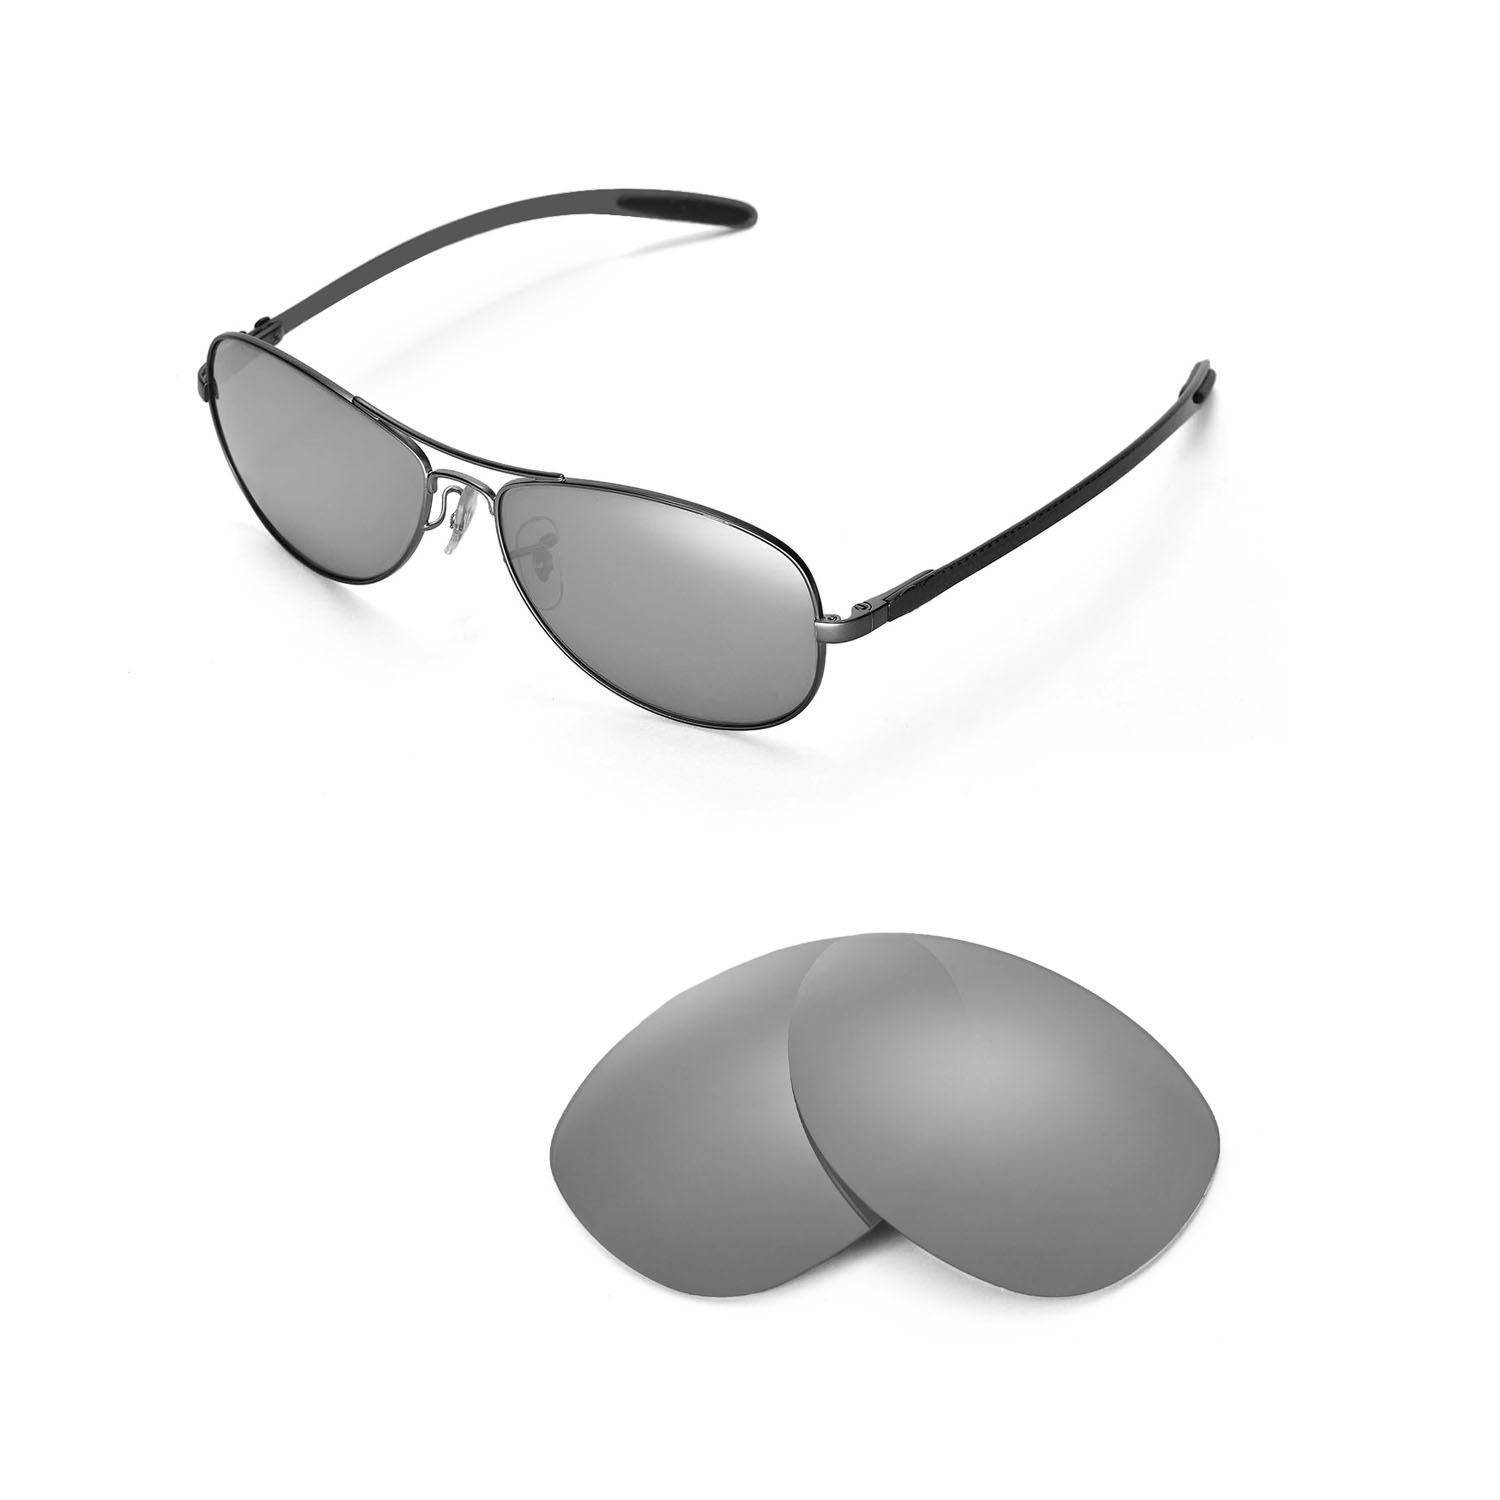 c0620b3bd9 Details about New Walleva Polarized Titanium Replacement For Ray-Ban RB8301  59mm